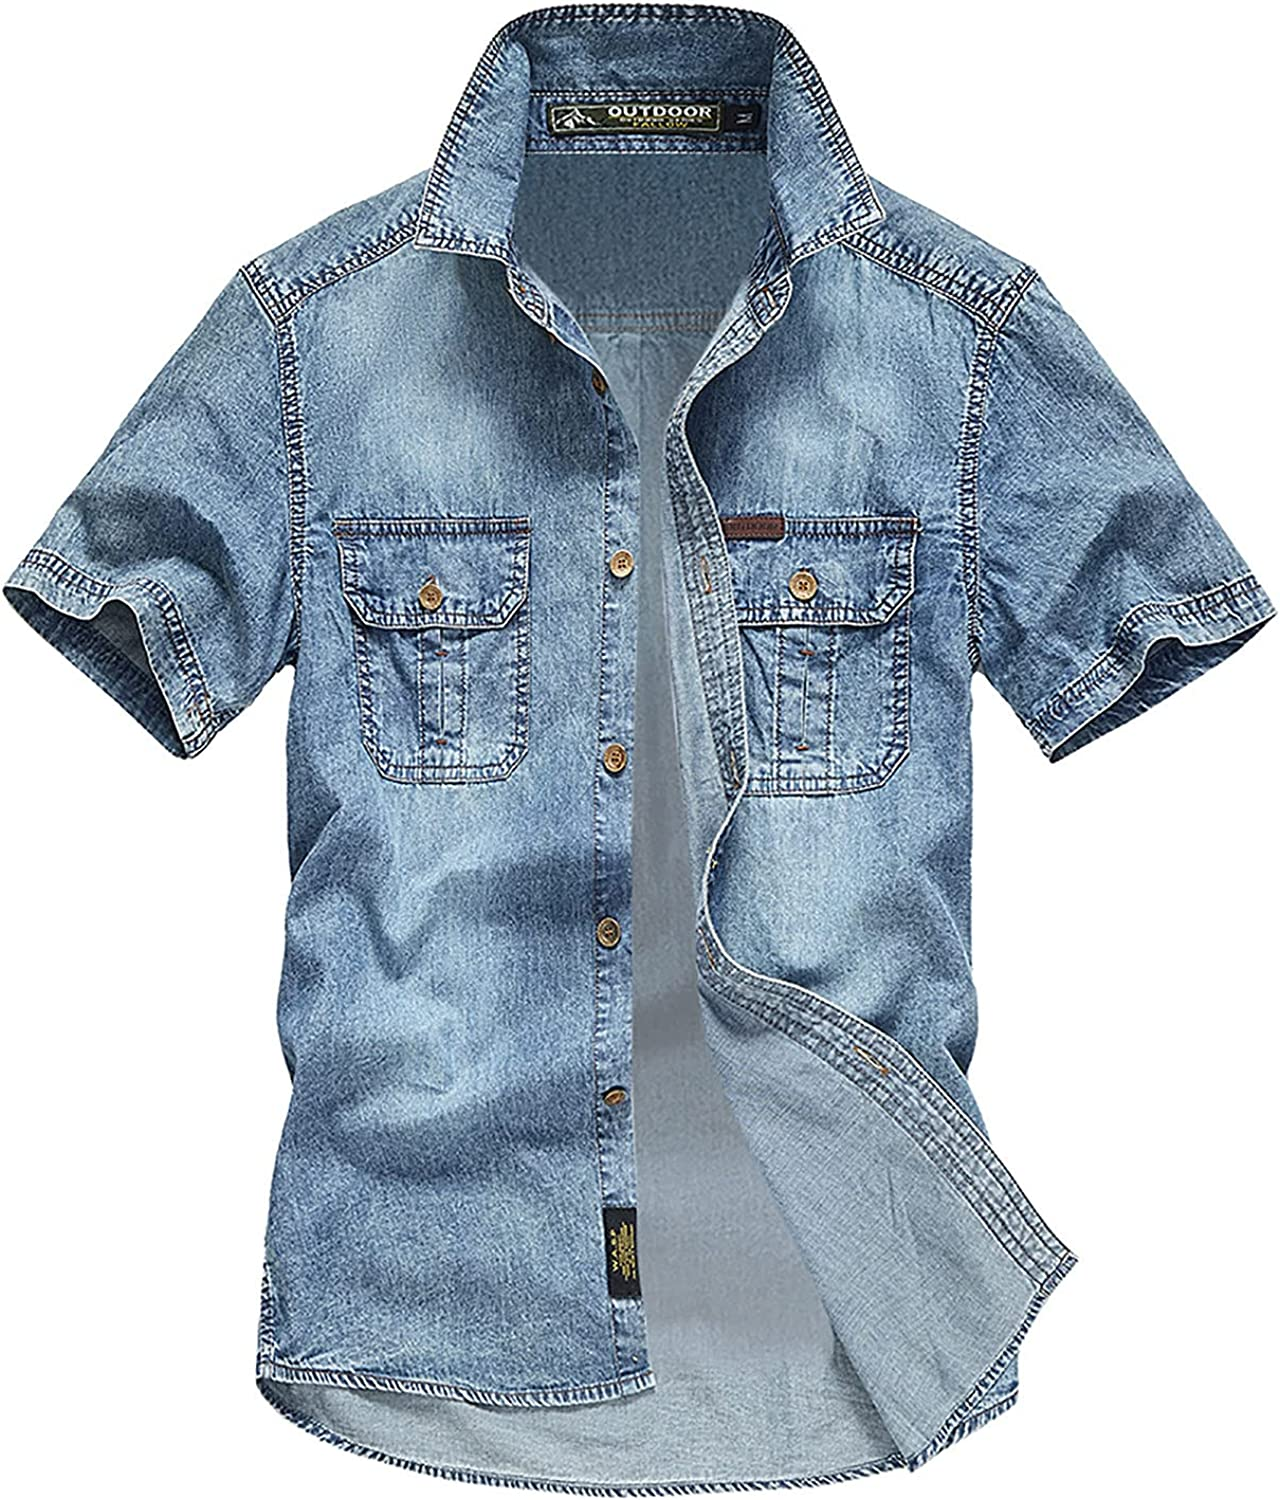 FUNEY Men's Regular-fit Long Sleeve Denim Button Down Shirts Casual Washed Workout Western Shirts with Multi-Pockets